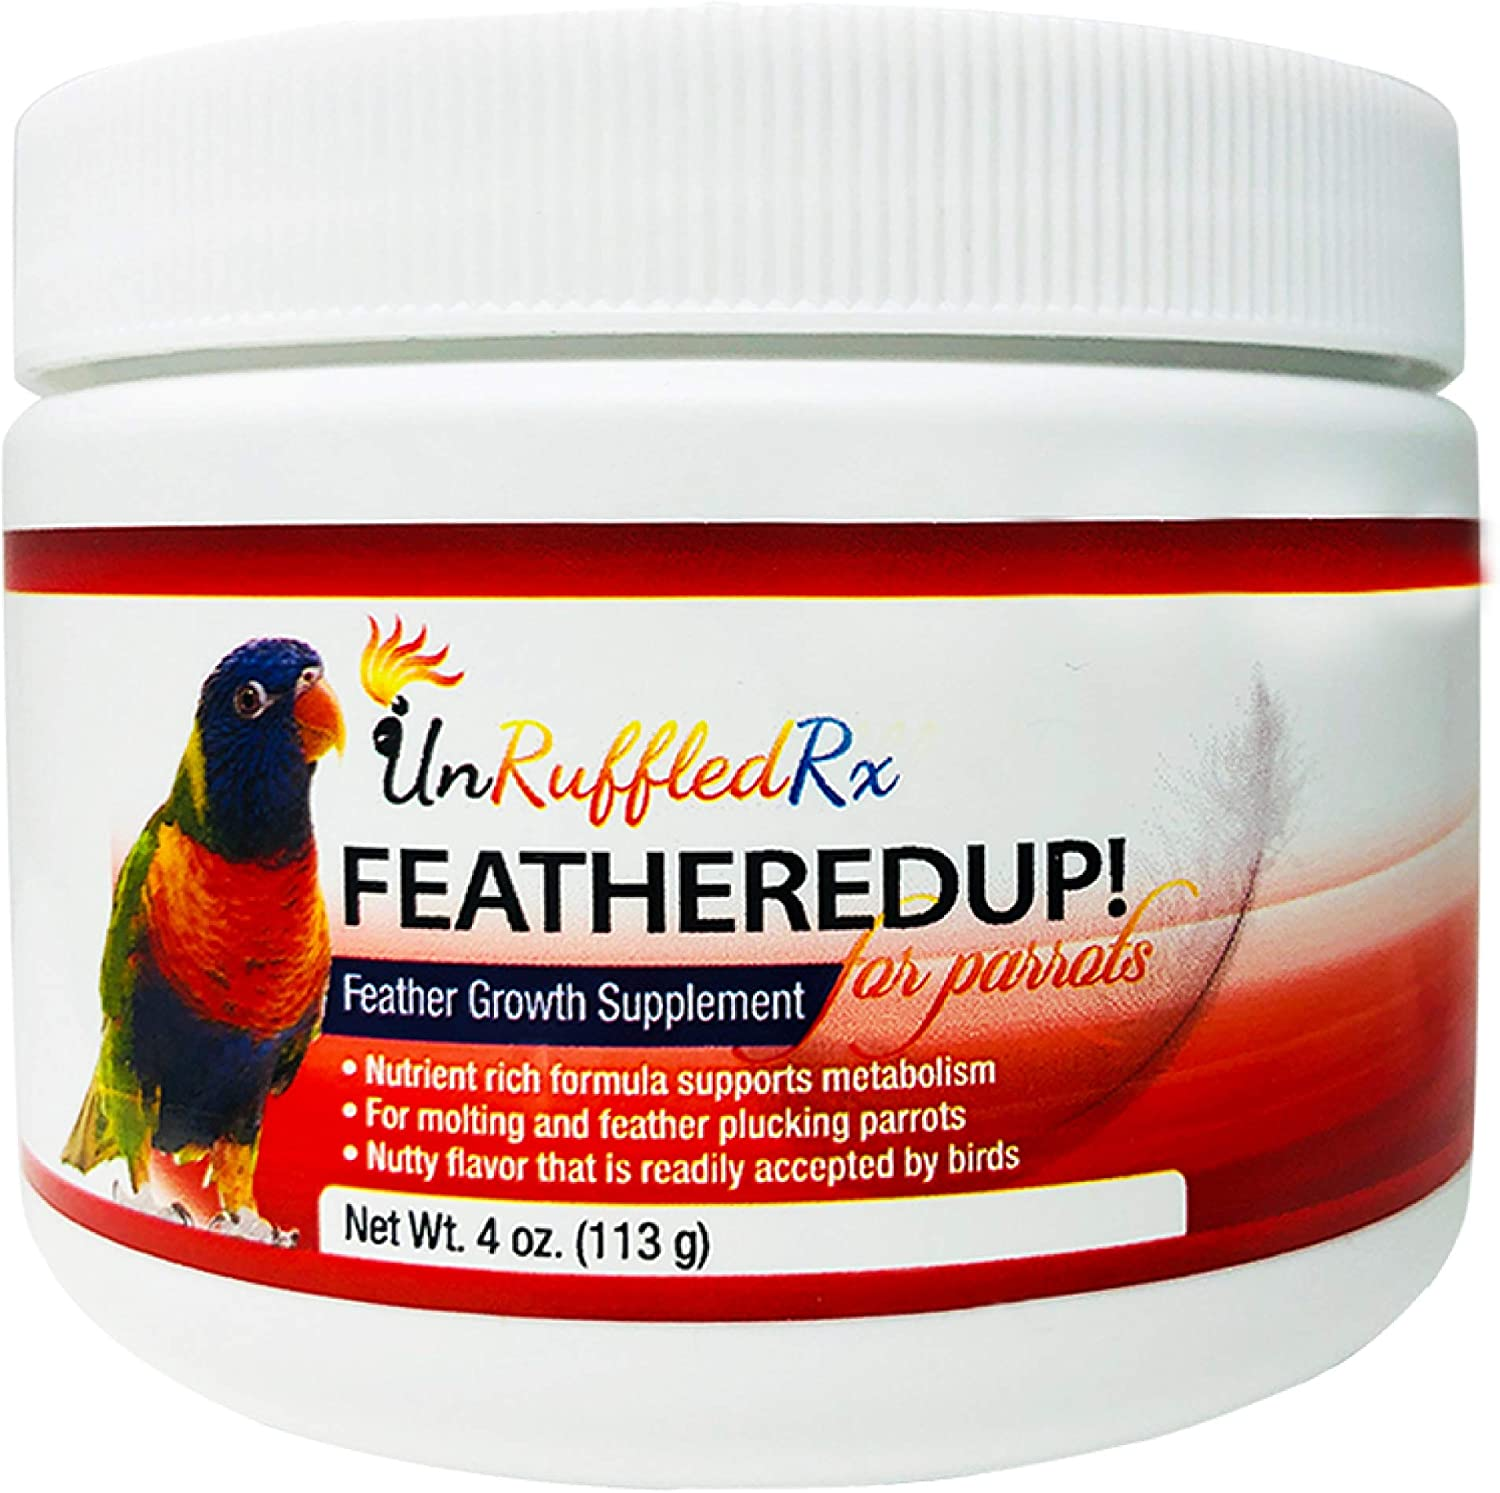 UnRuffledRx Bird Feather Growth Supplement FeatheredUp! Feather Growth Formula for Parrots. Helps Stressed Caged Pets Regrow Feathers Fast (4 oz.113 Grams)